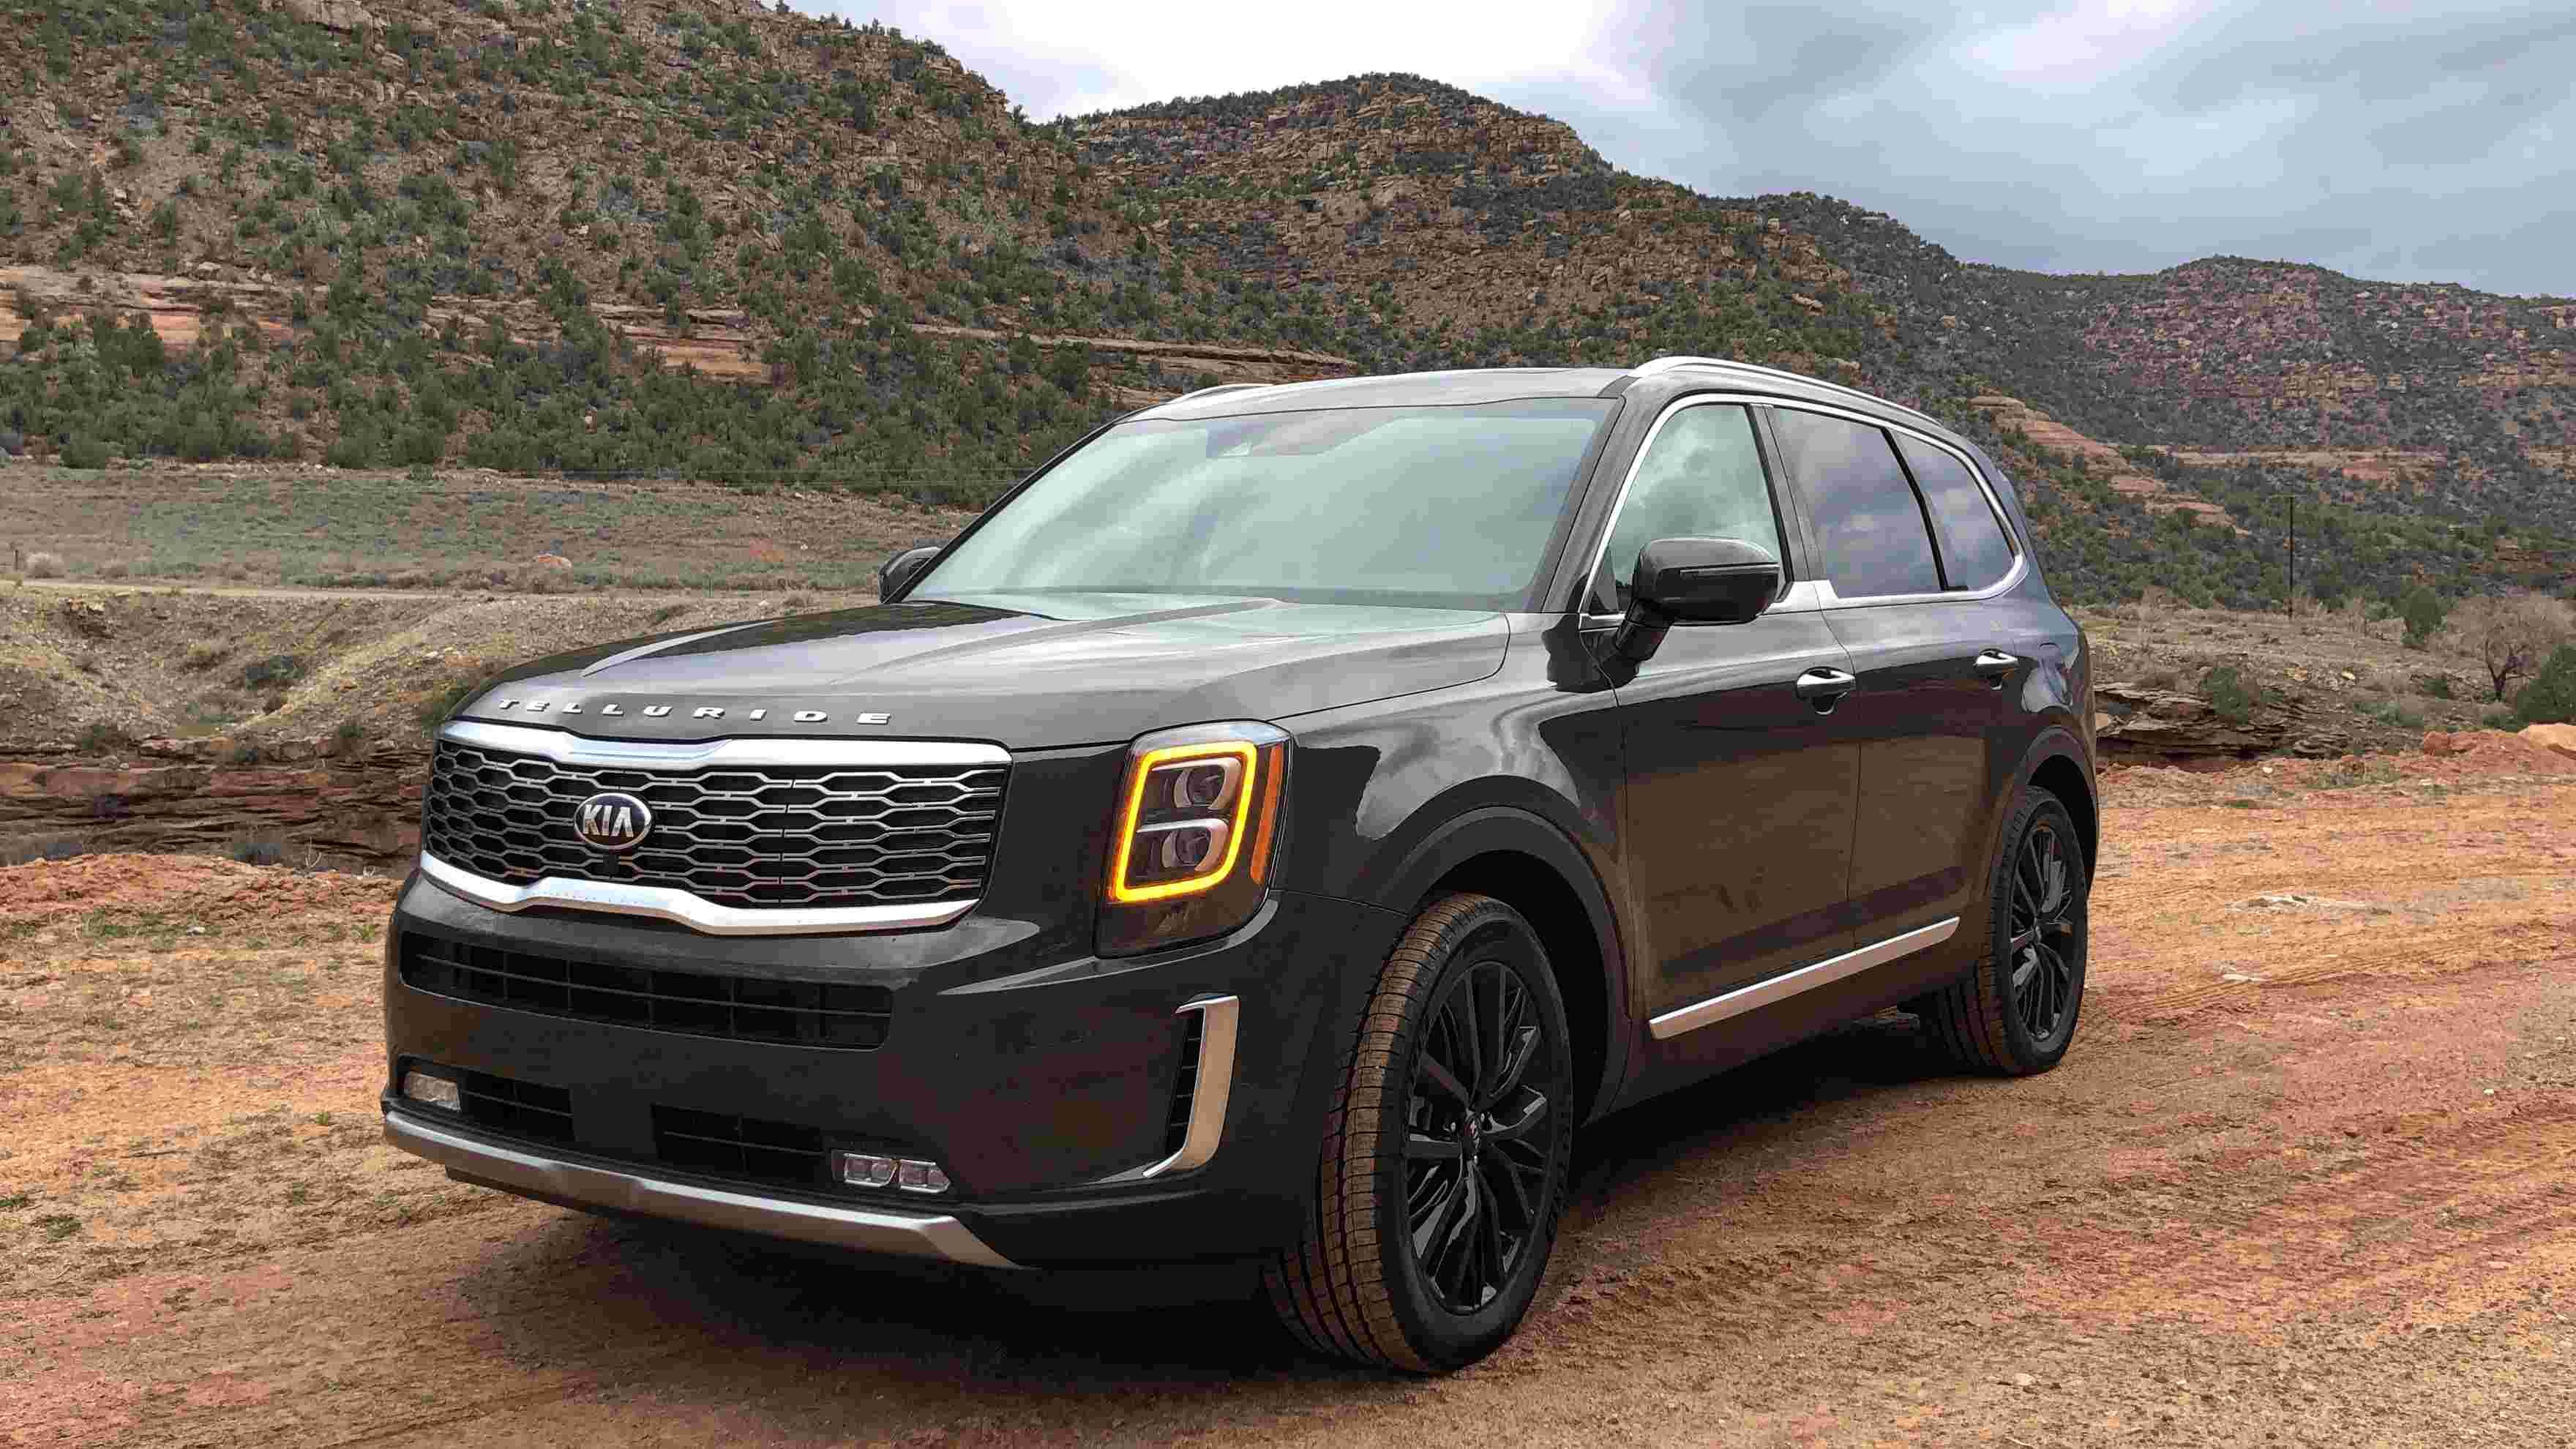 2019 Kia Telluride. Stupid name for yet another SUV. When